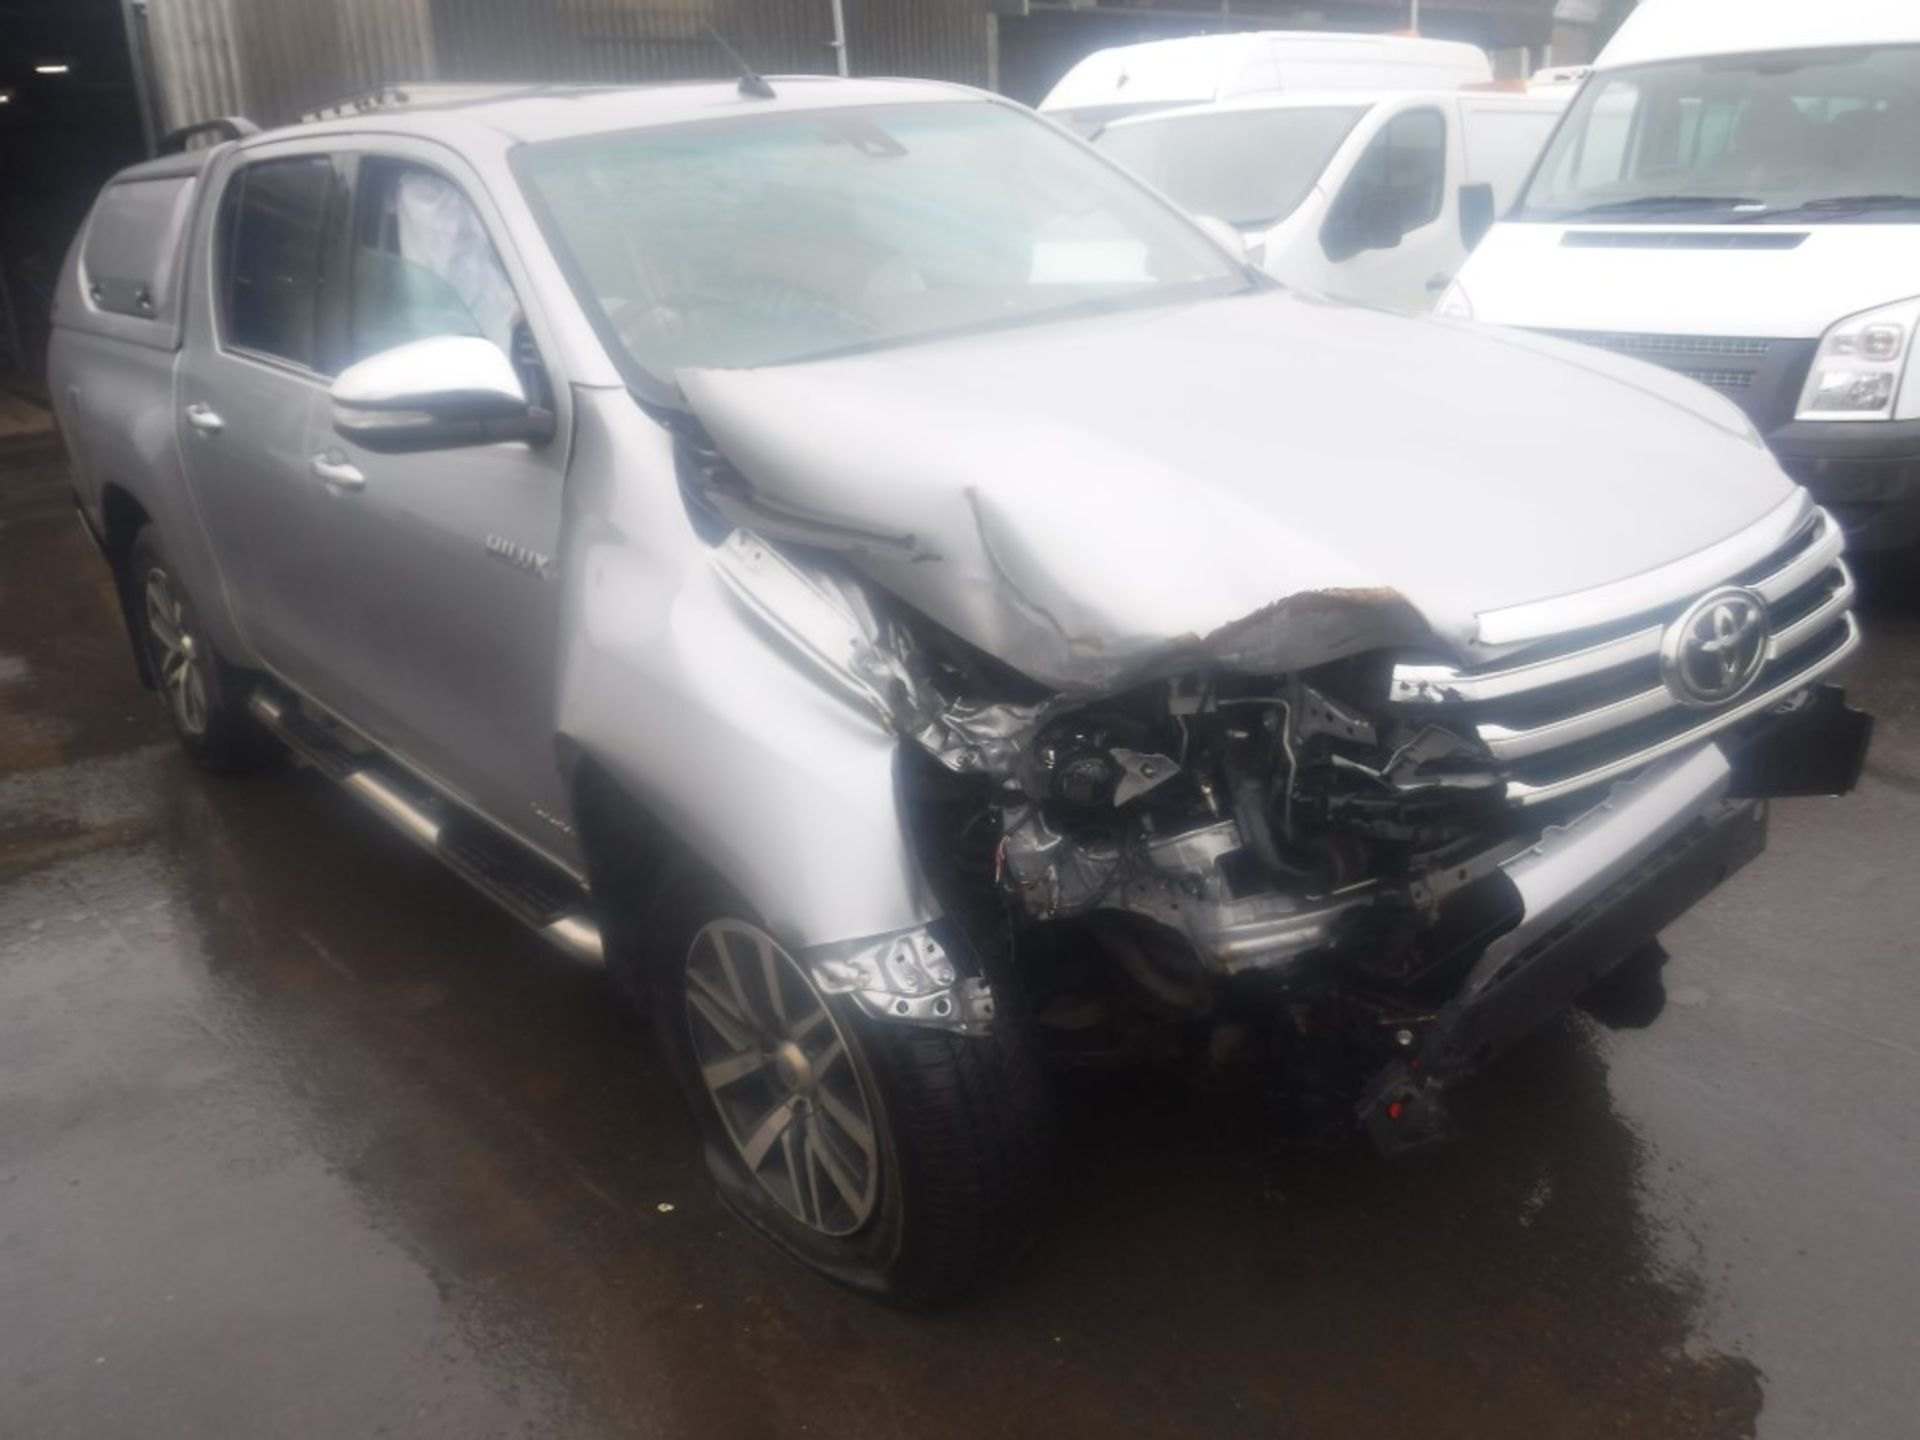 Lot 9 - 17 reg TOYOTA HI-LUX INVINCIBLE D-4D 4WD DCB - ACCIDENT DAMAGED (DIRECT ELECTRICITY NW) 1ST REG 05/